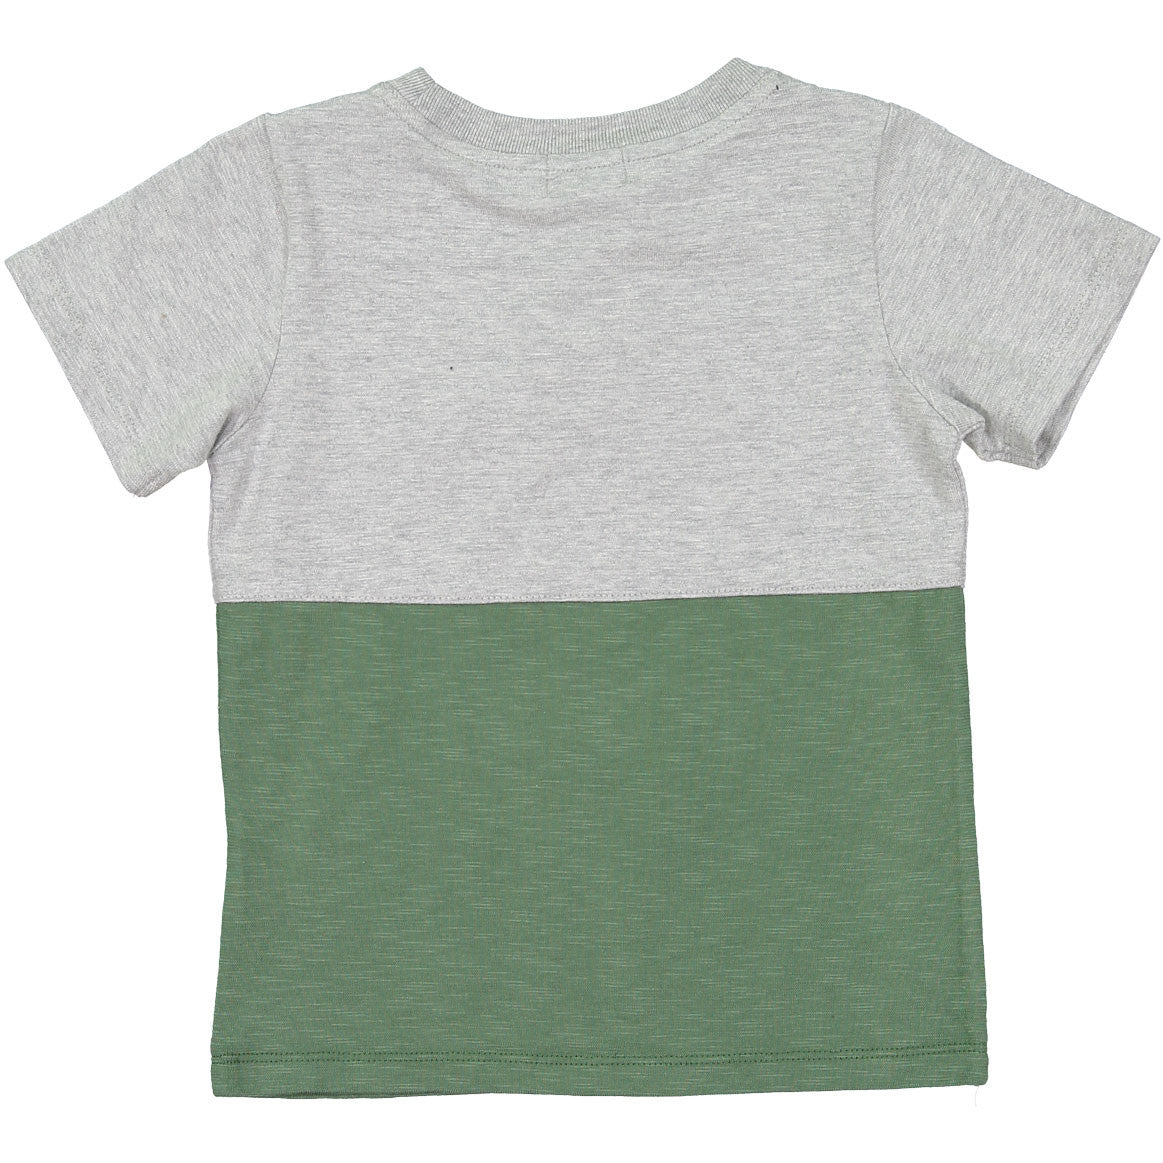 Arch and Line Olive/Grey Full - Ladida